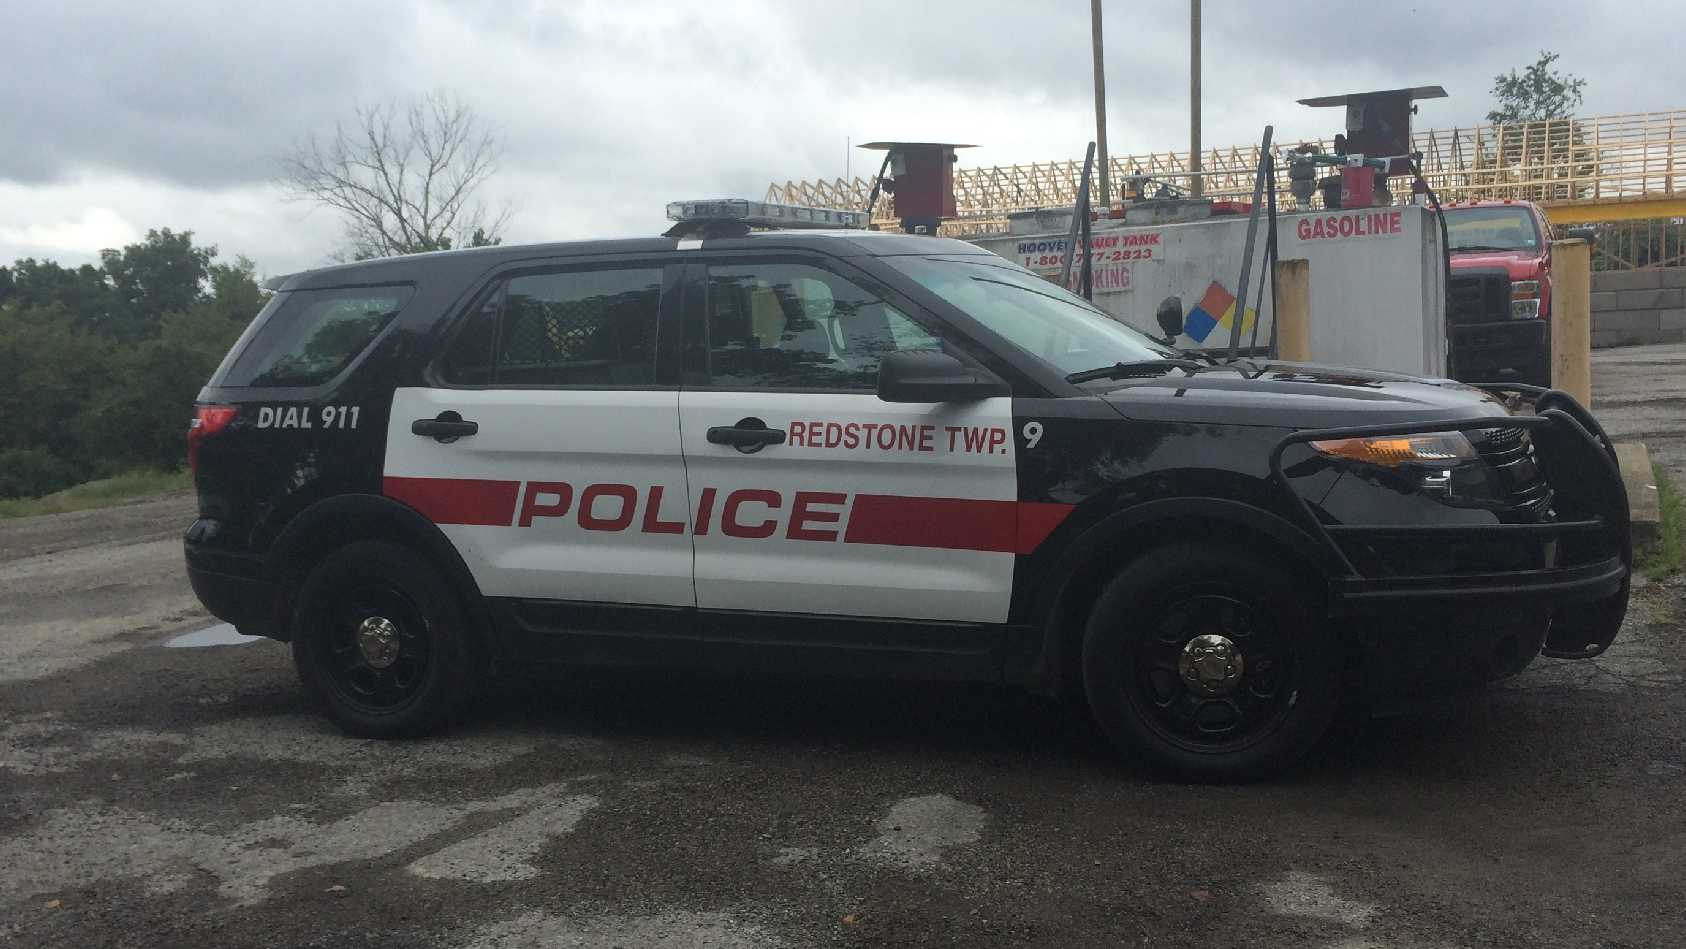 A Redstone Township police vehicle.